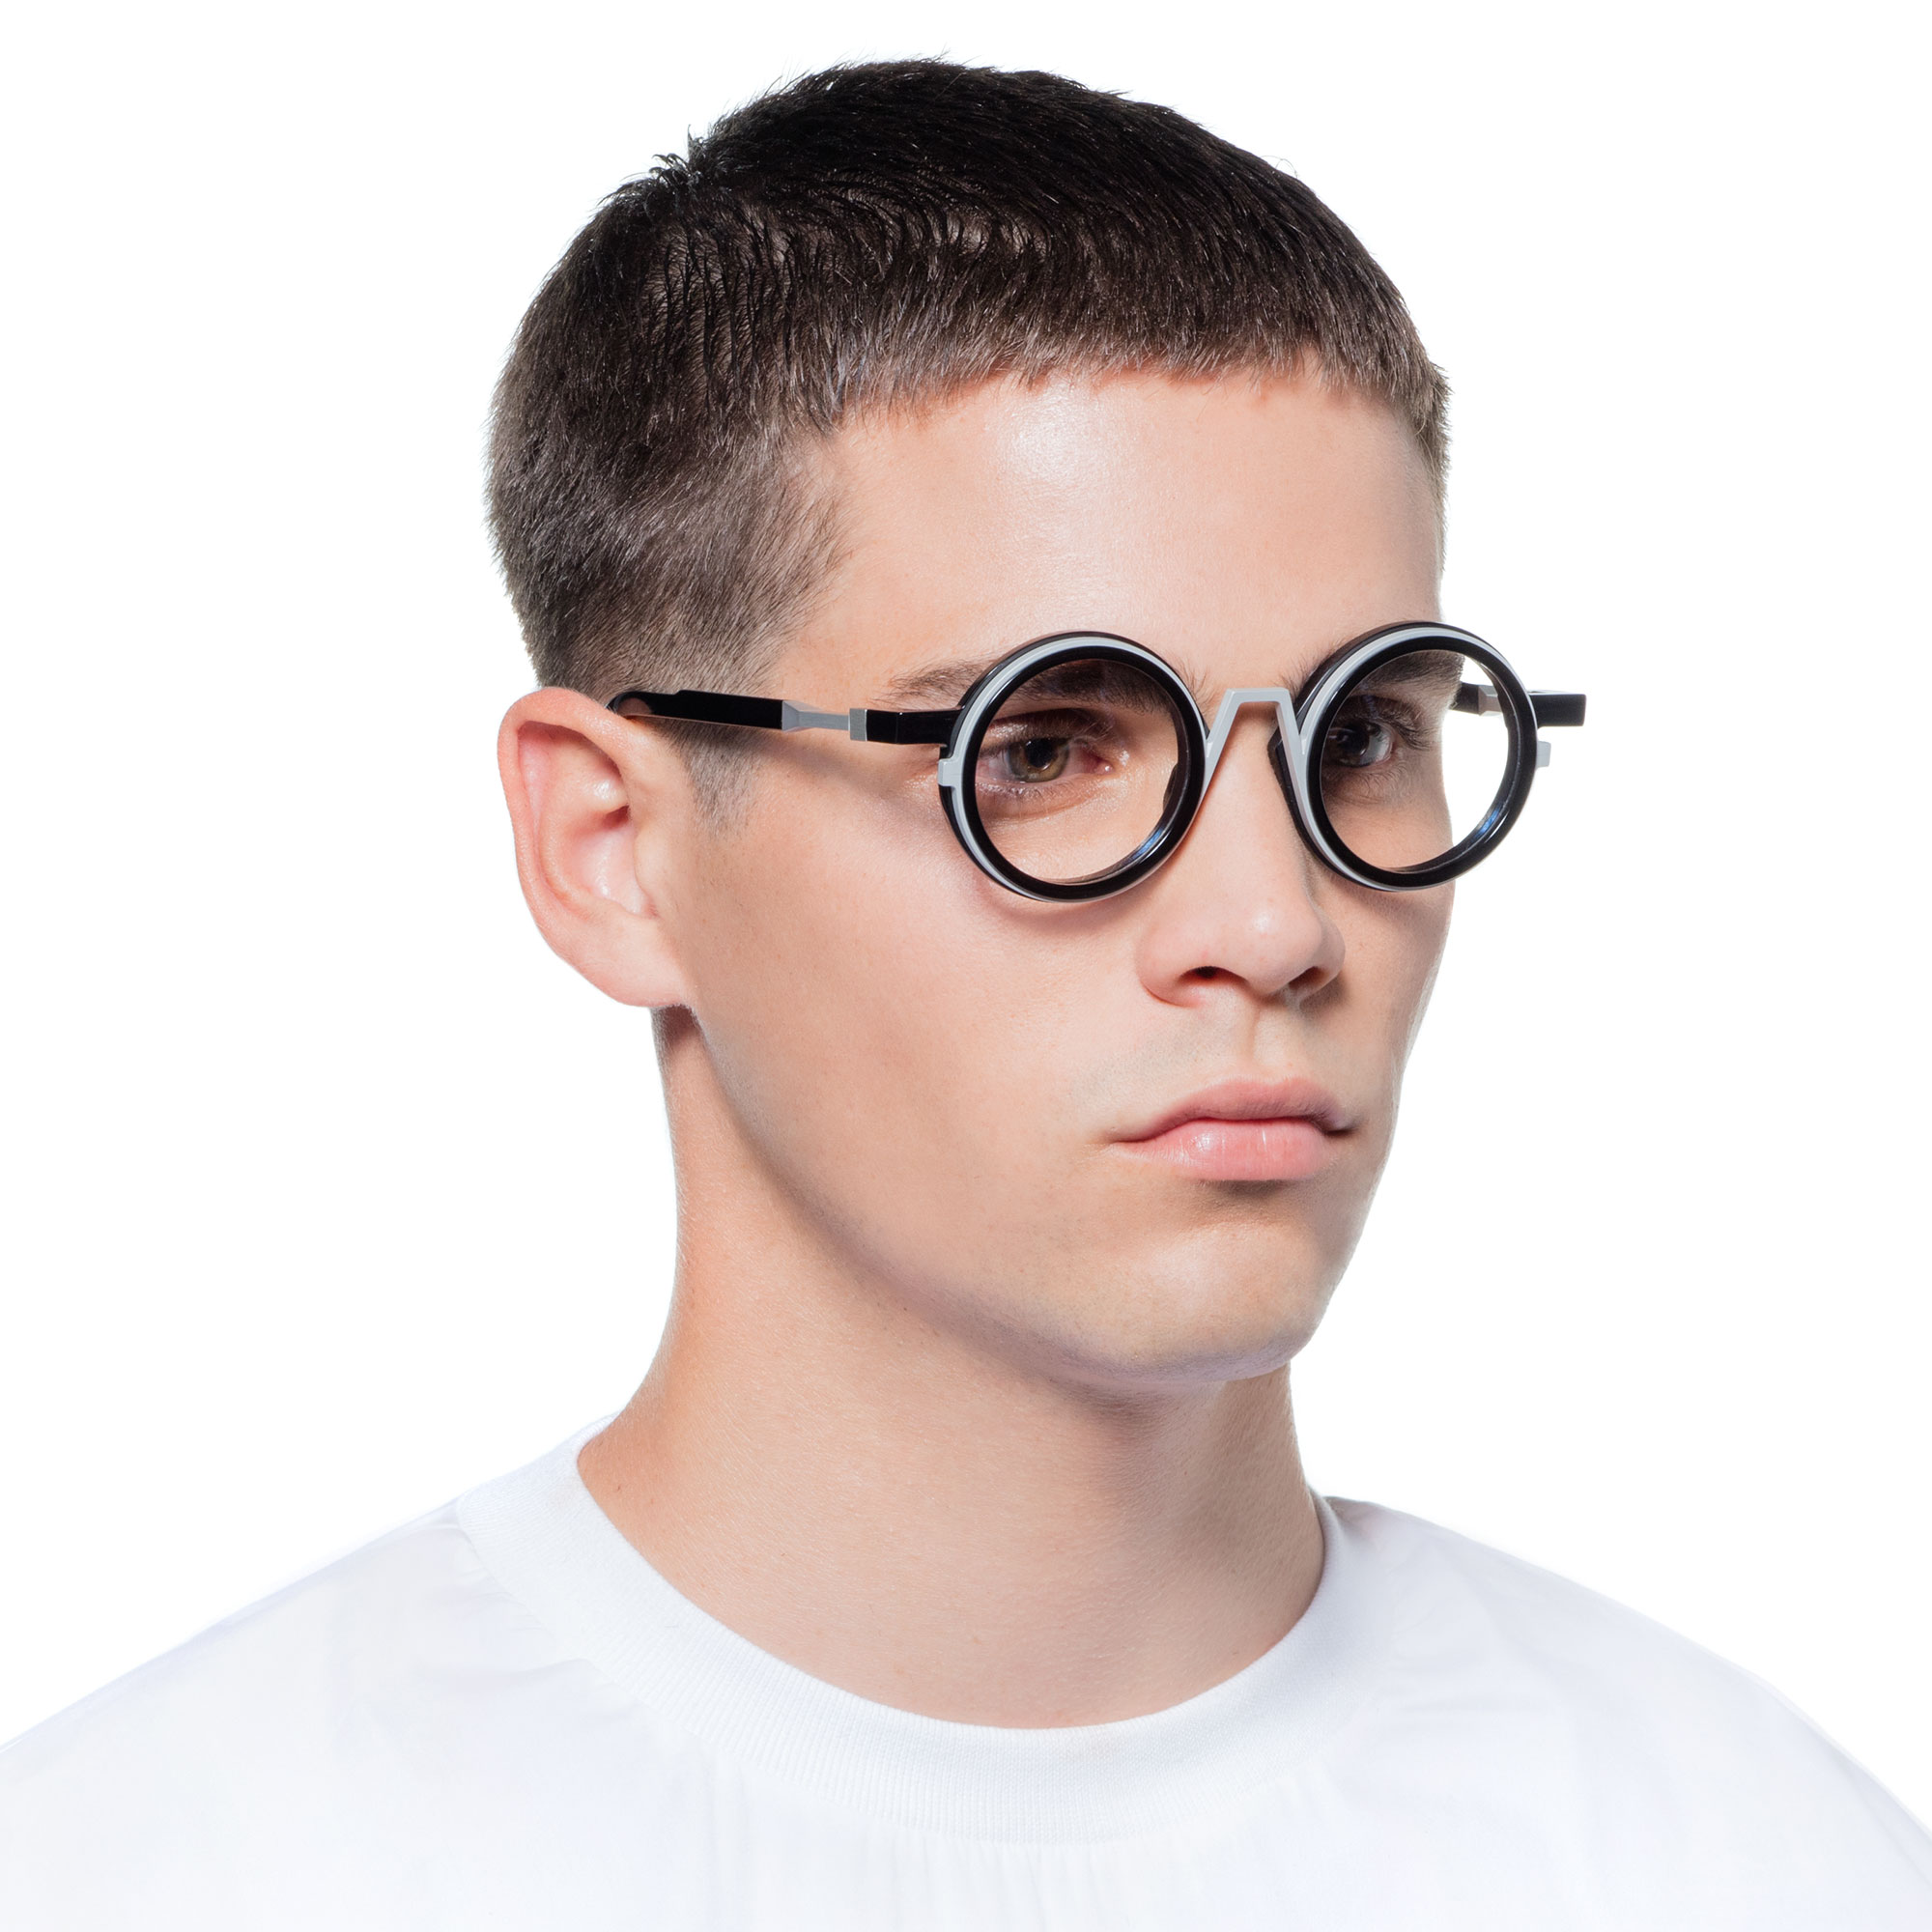 VAVA WL0045 OPTICAL FRAME EYEWEAR